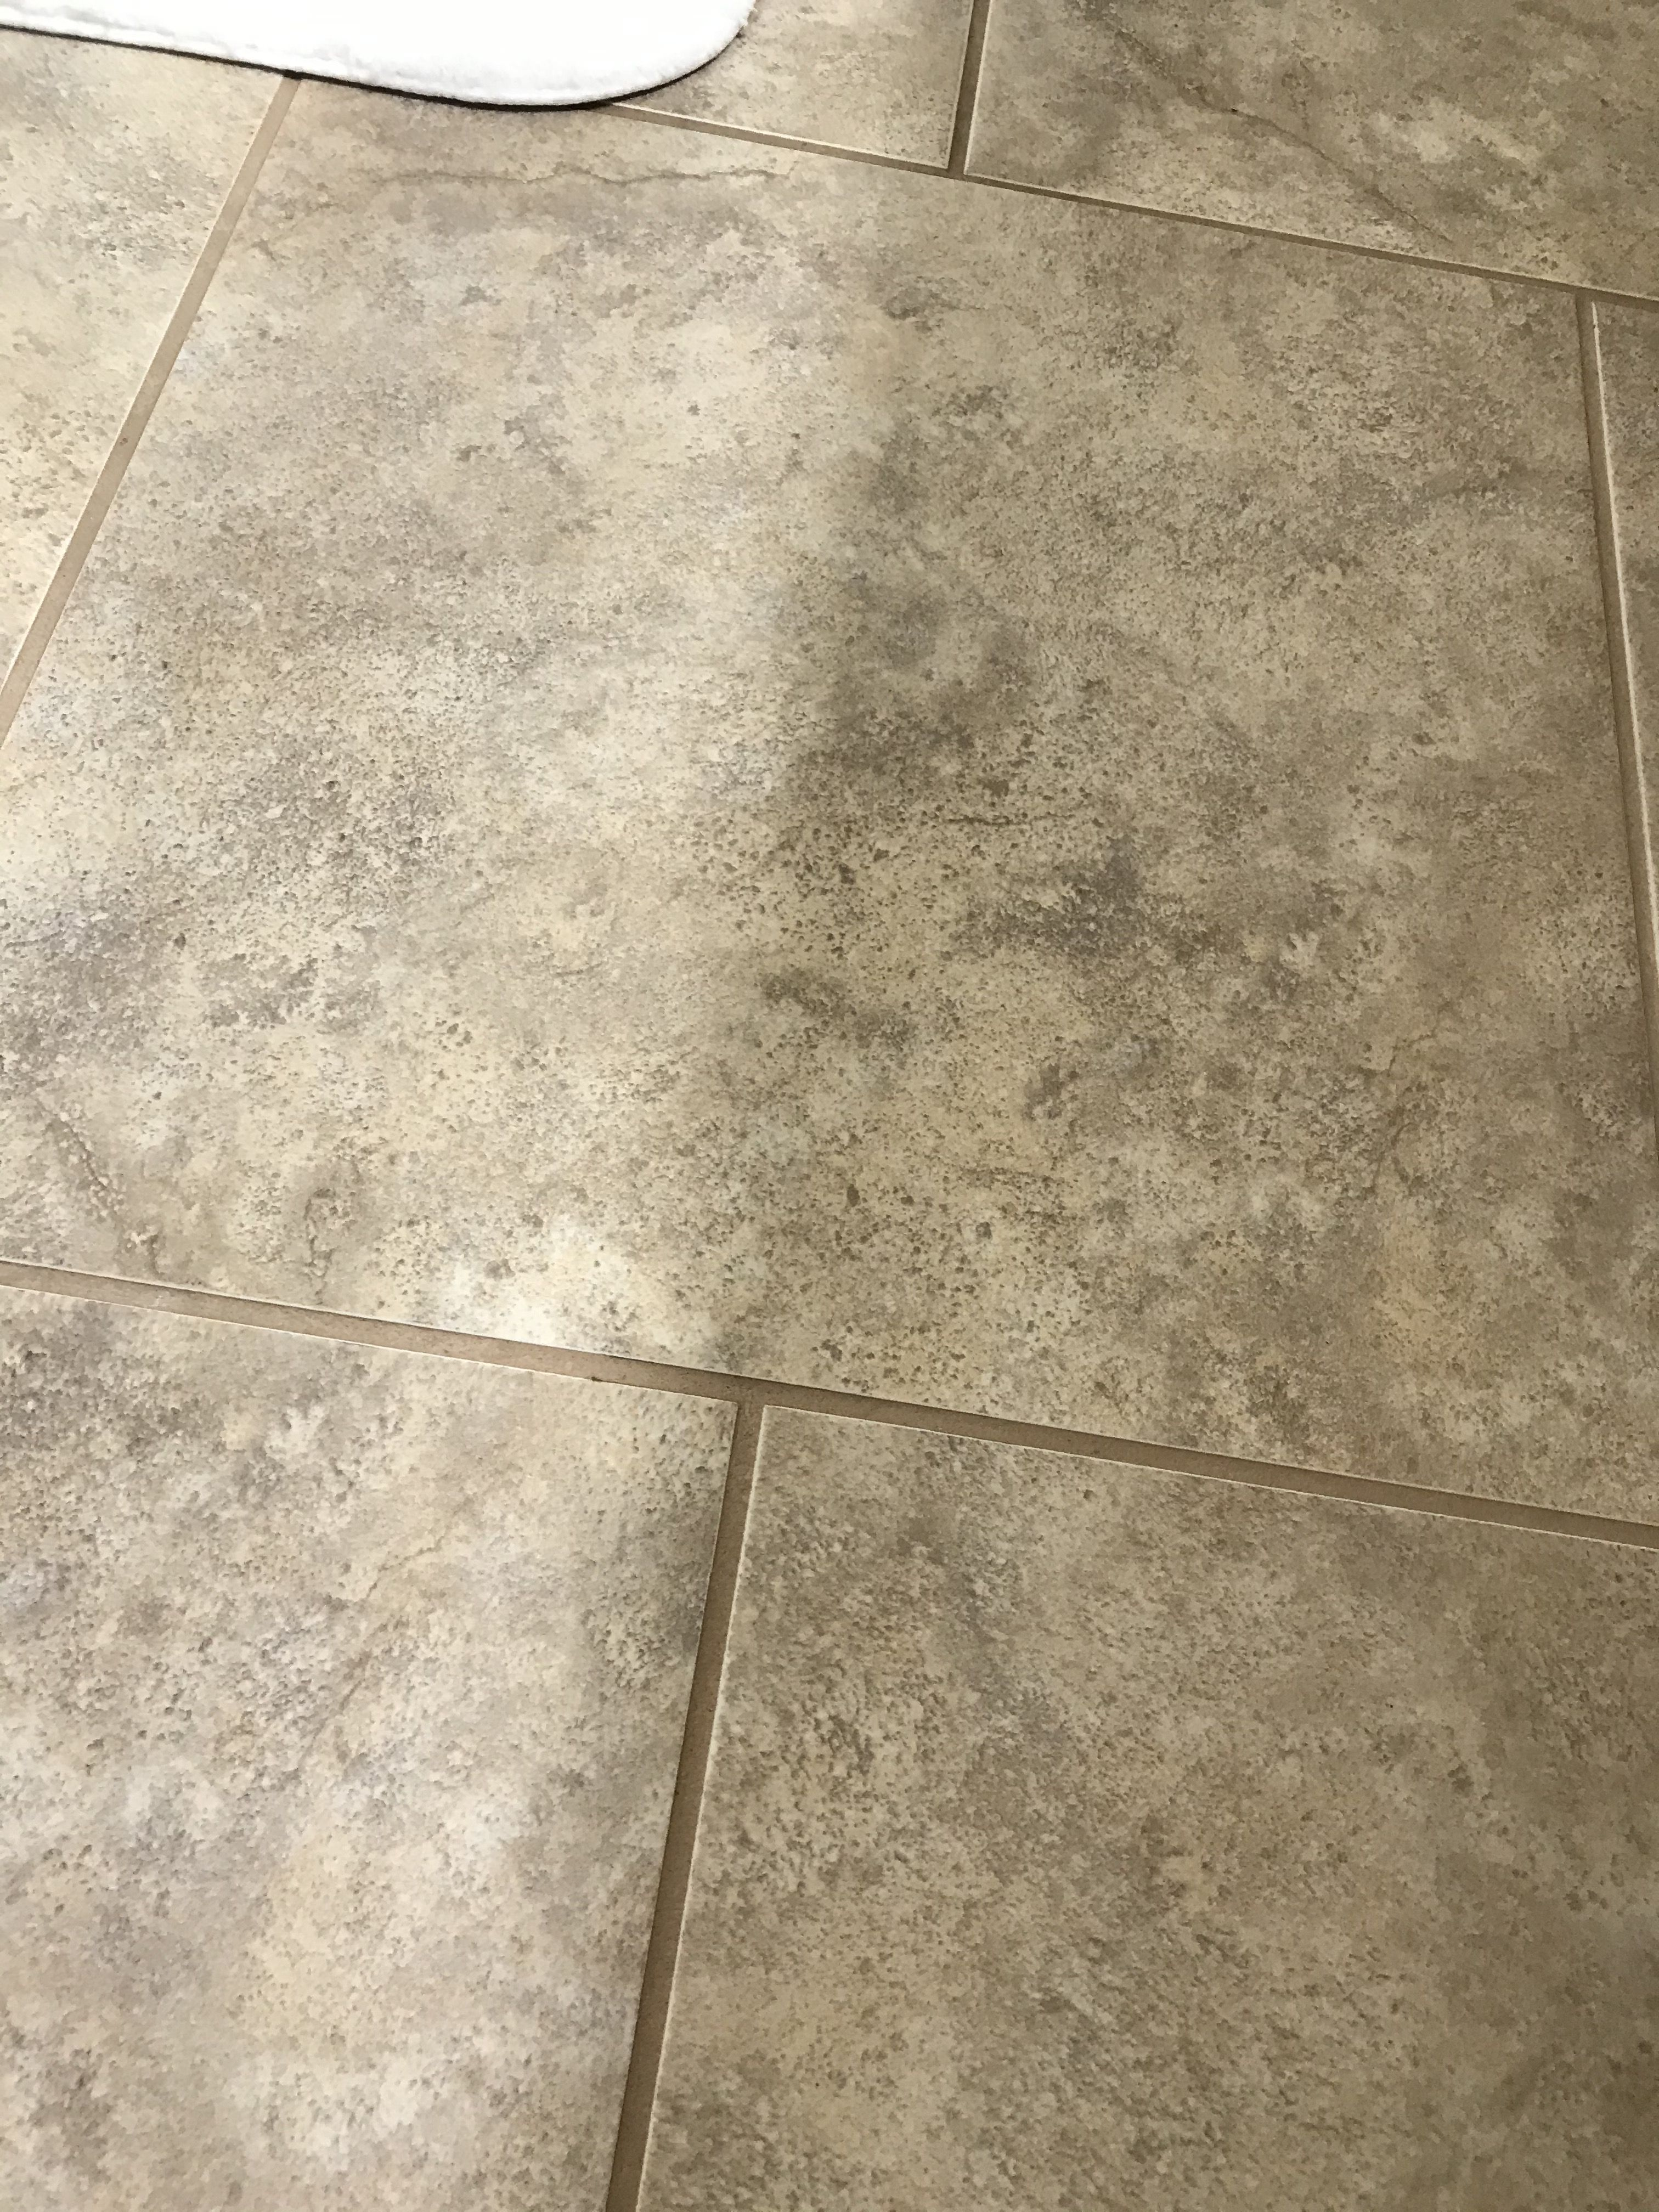 Pin By Malaga On Clean Lines Flooring Tile Floor Cleaning